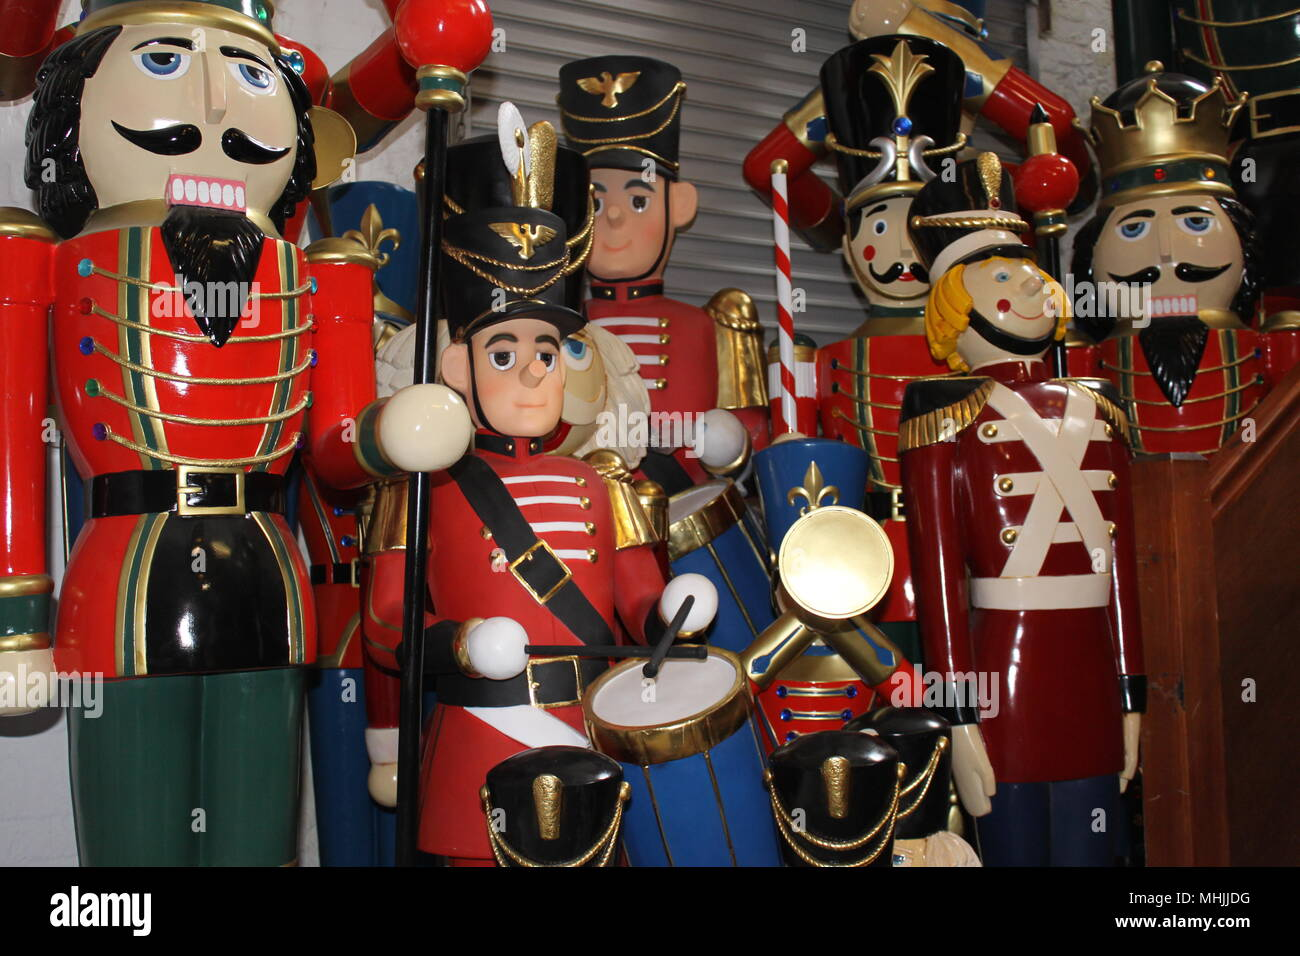 Life size resin soldier models for sale from The Jolly Roger Limited, Bovey Tracey, Devon, England, UK, PETER GRANT - Stock Image